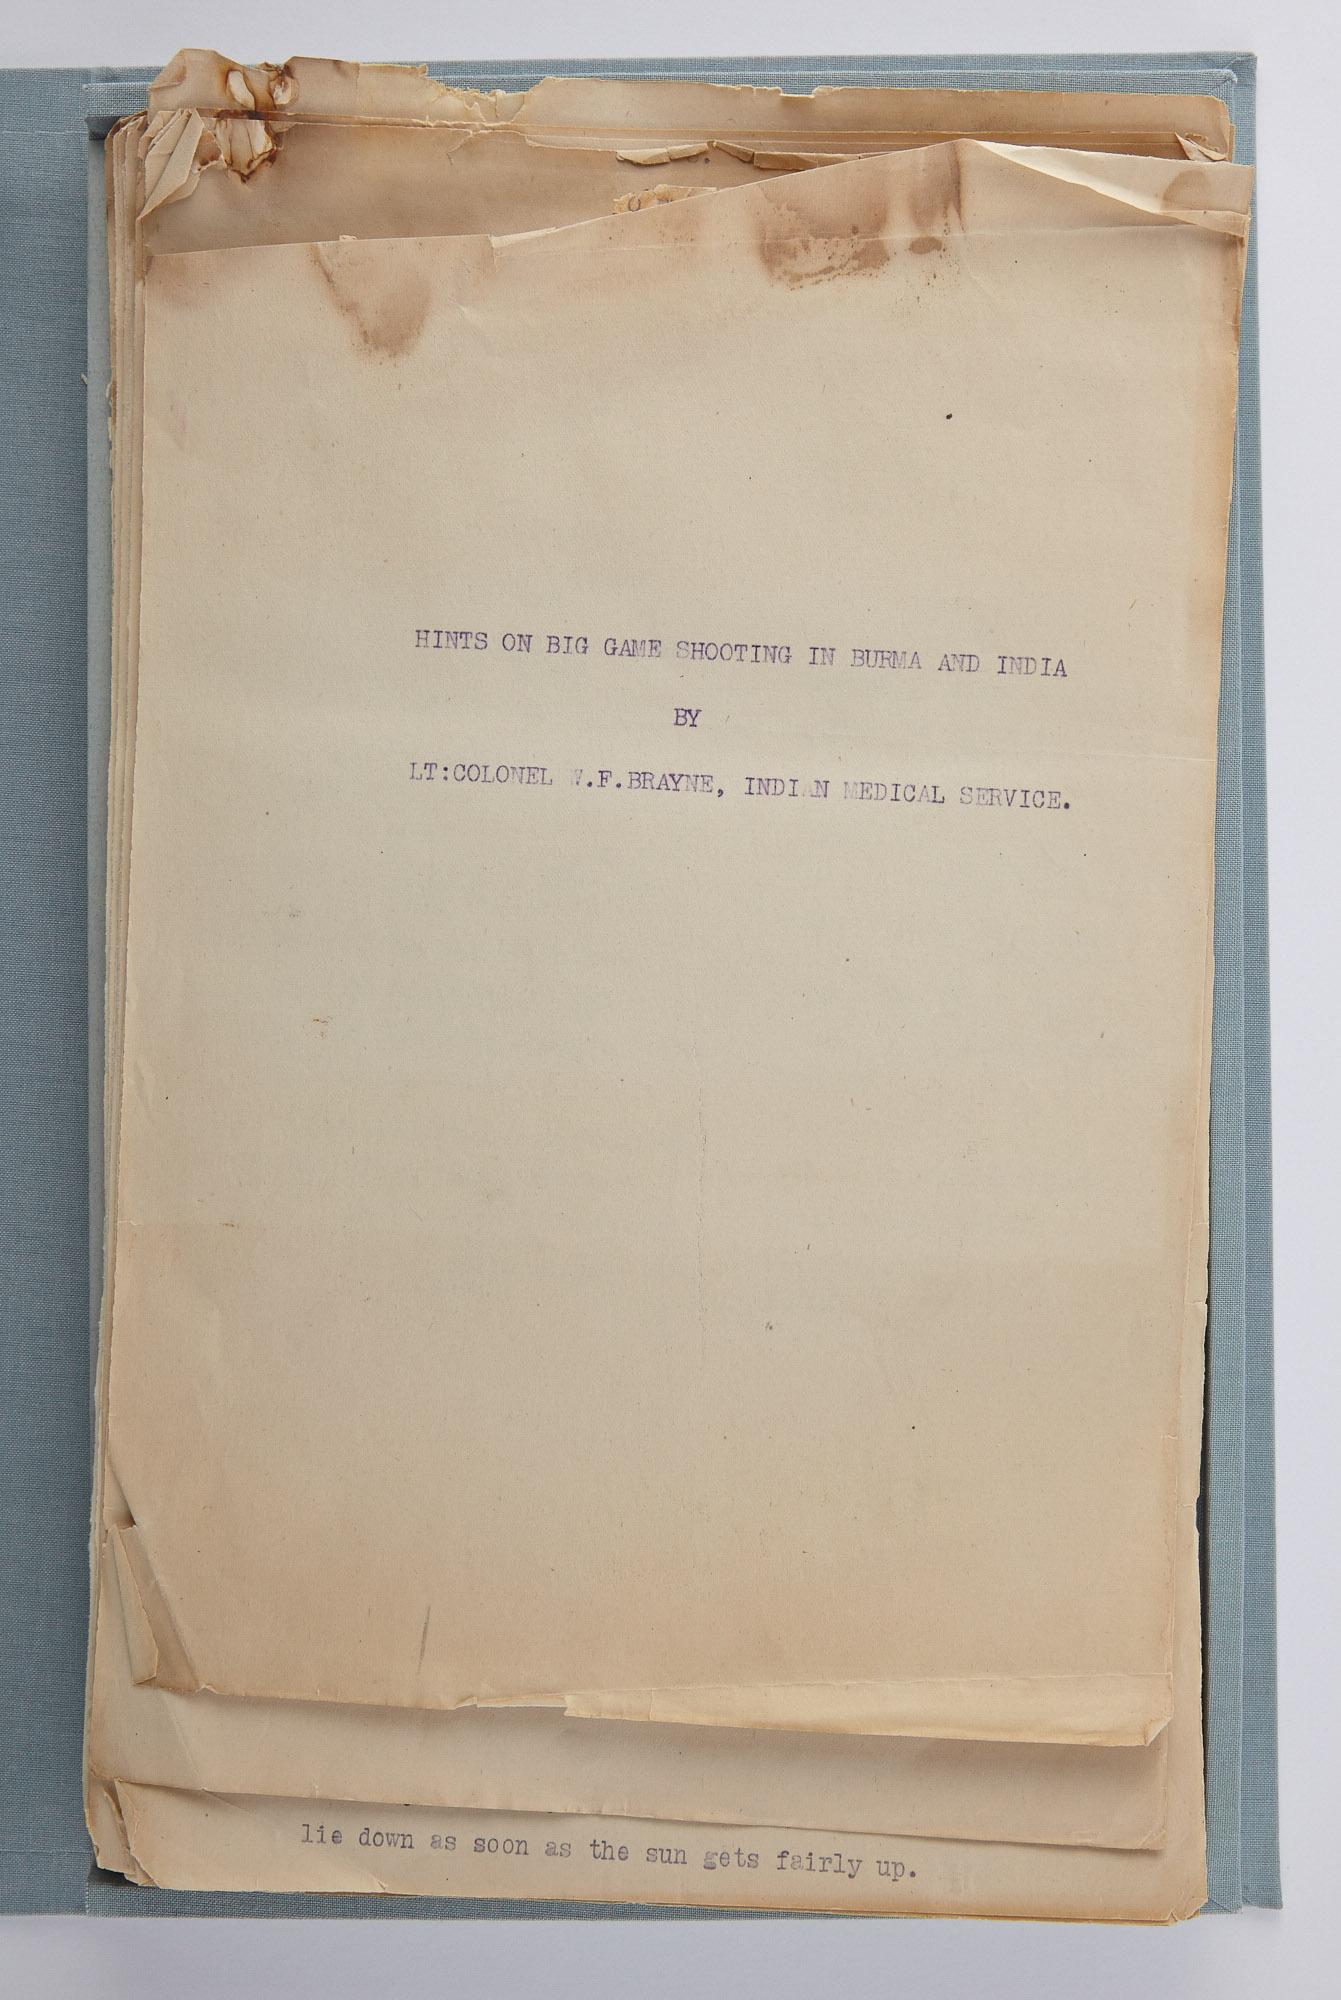 Lot image - [INDIA & BURMA]  Typescript titled Hints on Big Game Shooting in Burma and India. By Lt. Colonel W.F. Brayne, Indian Medical Service.